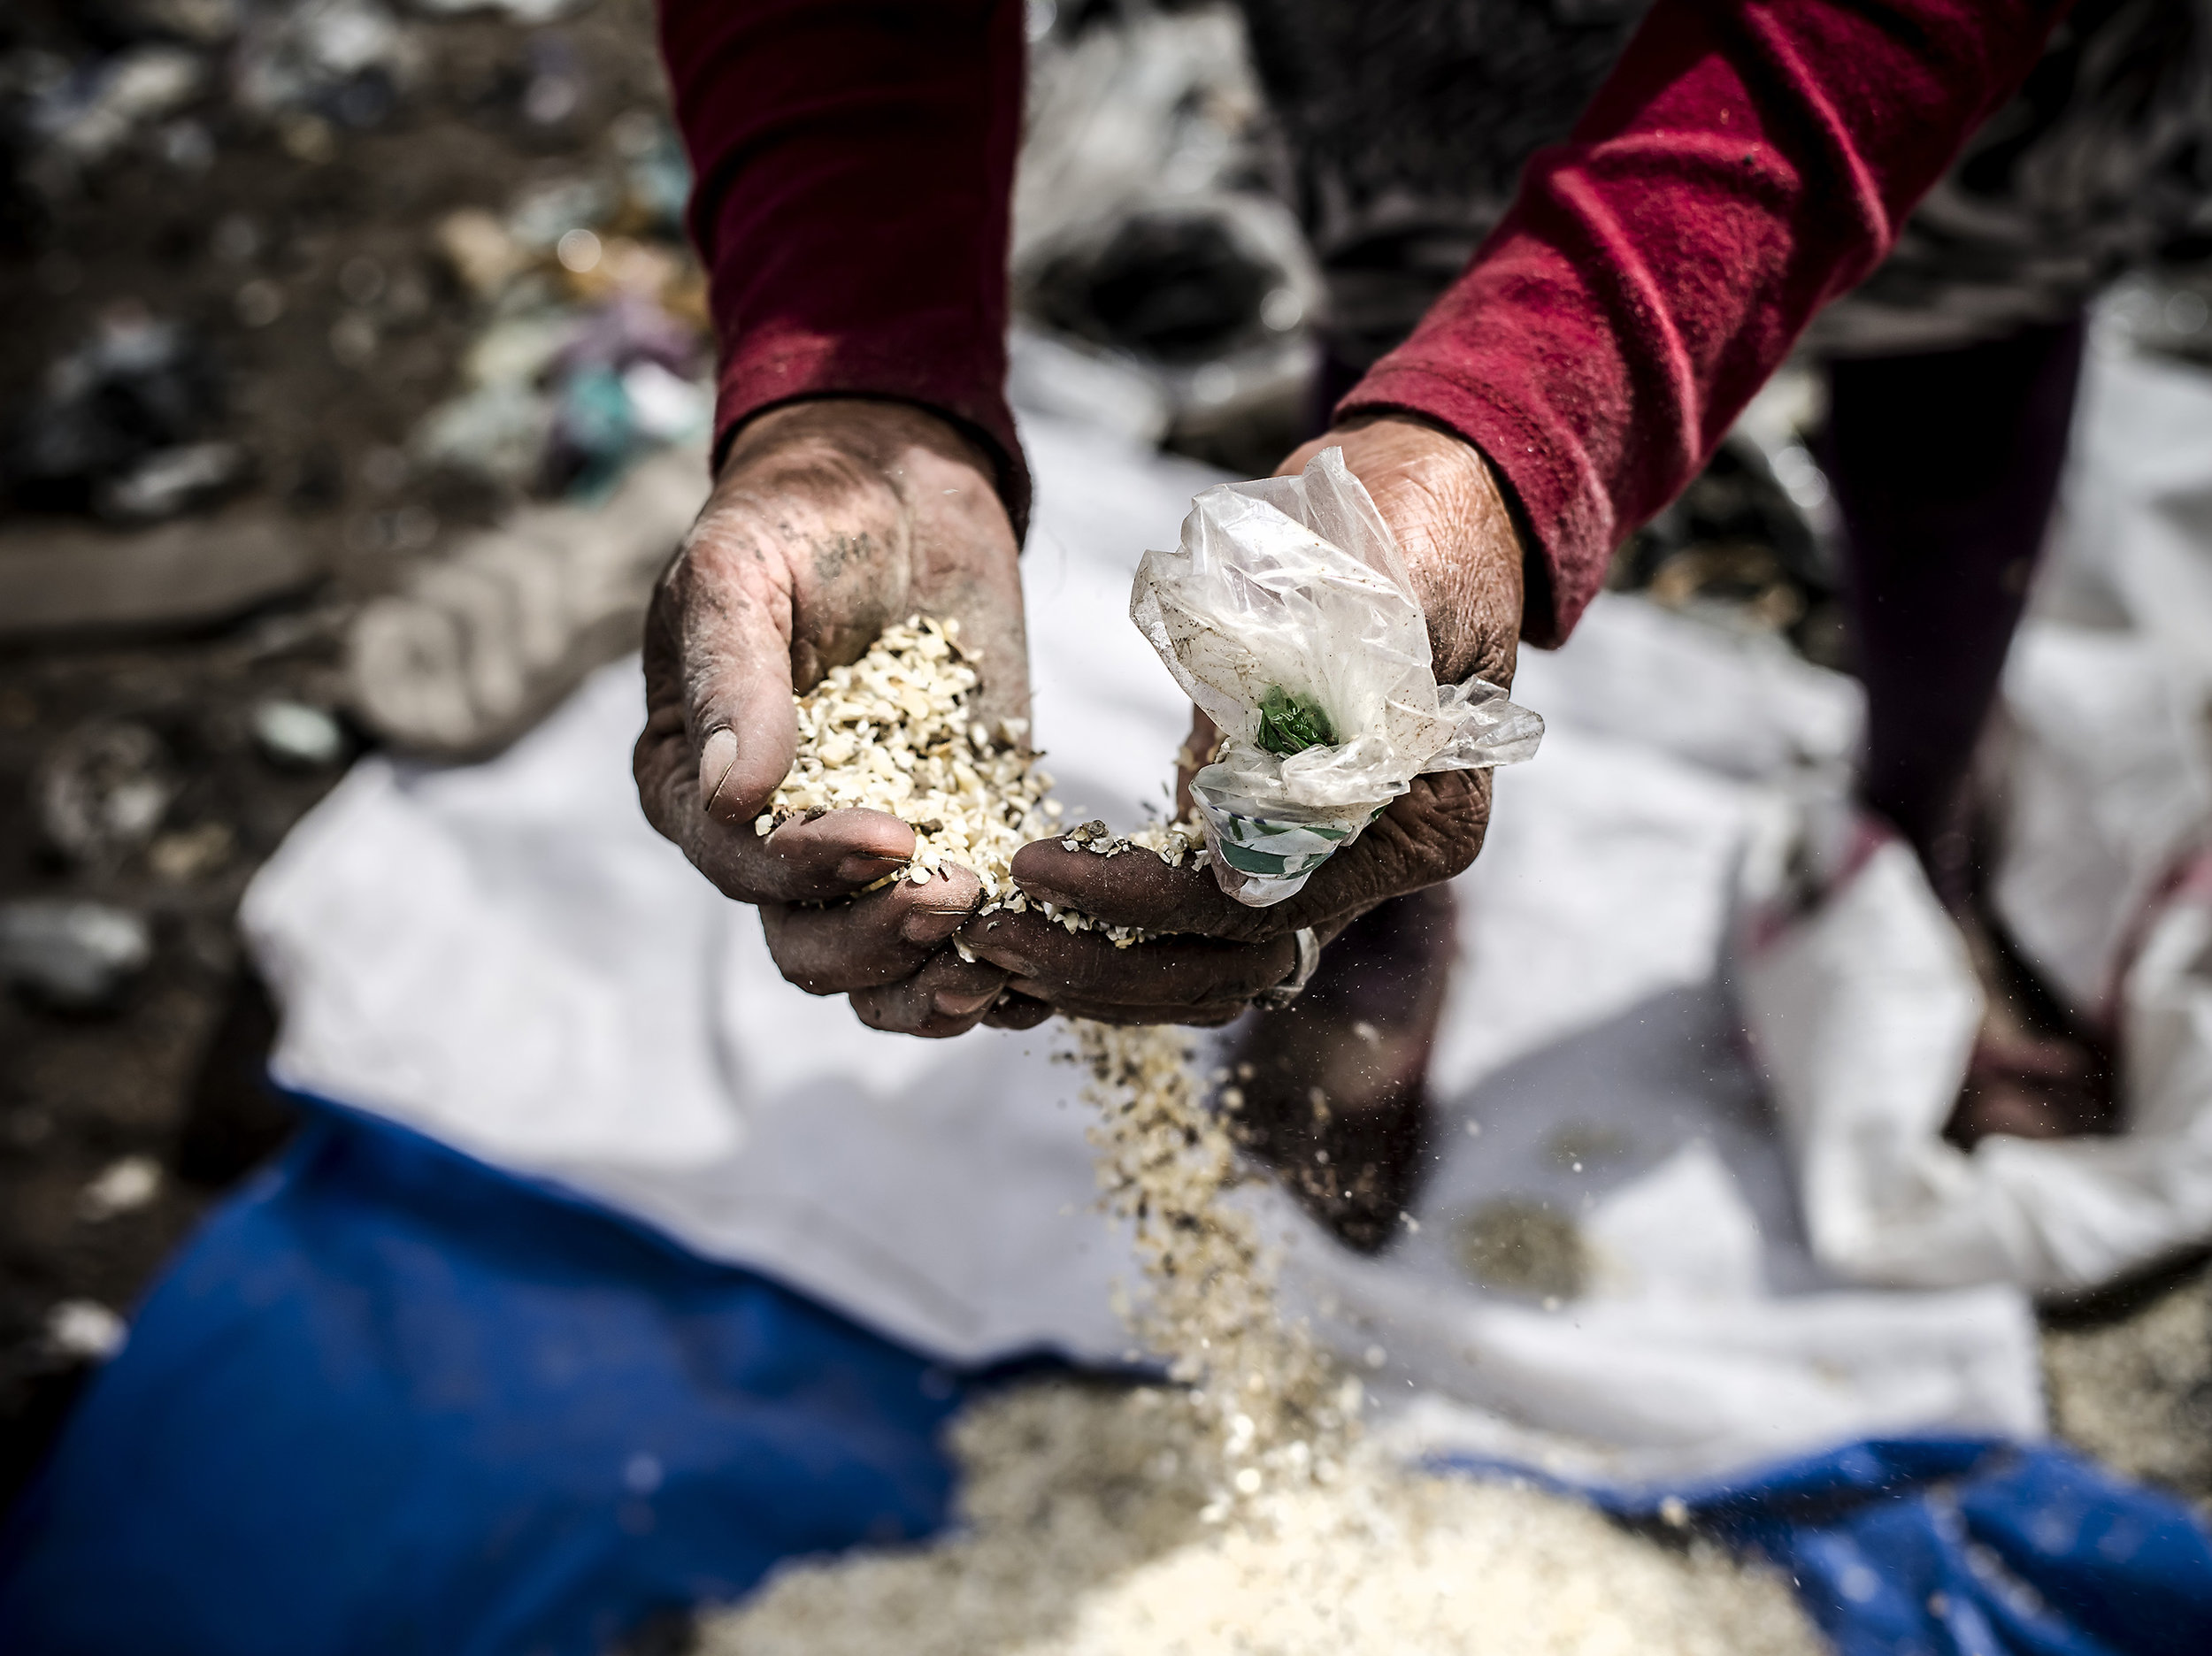 A woman sifts through corn meal from the garbage to feed to her pigs.